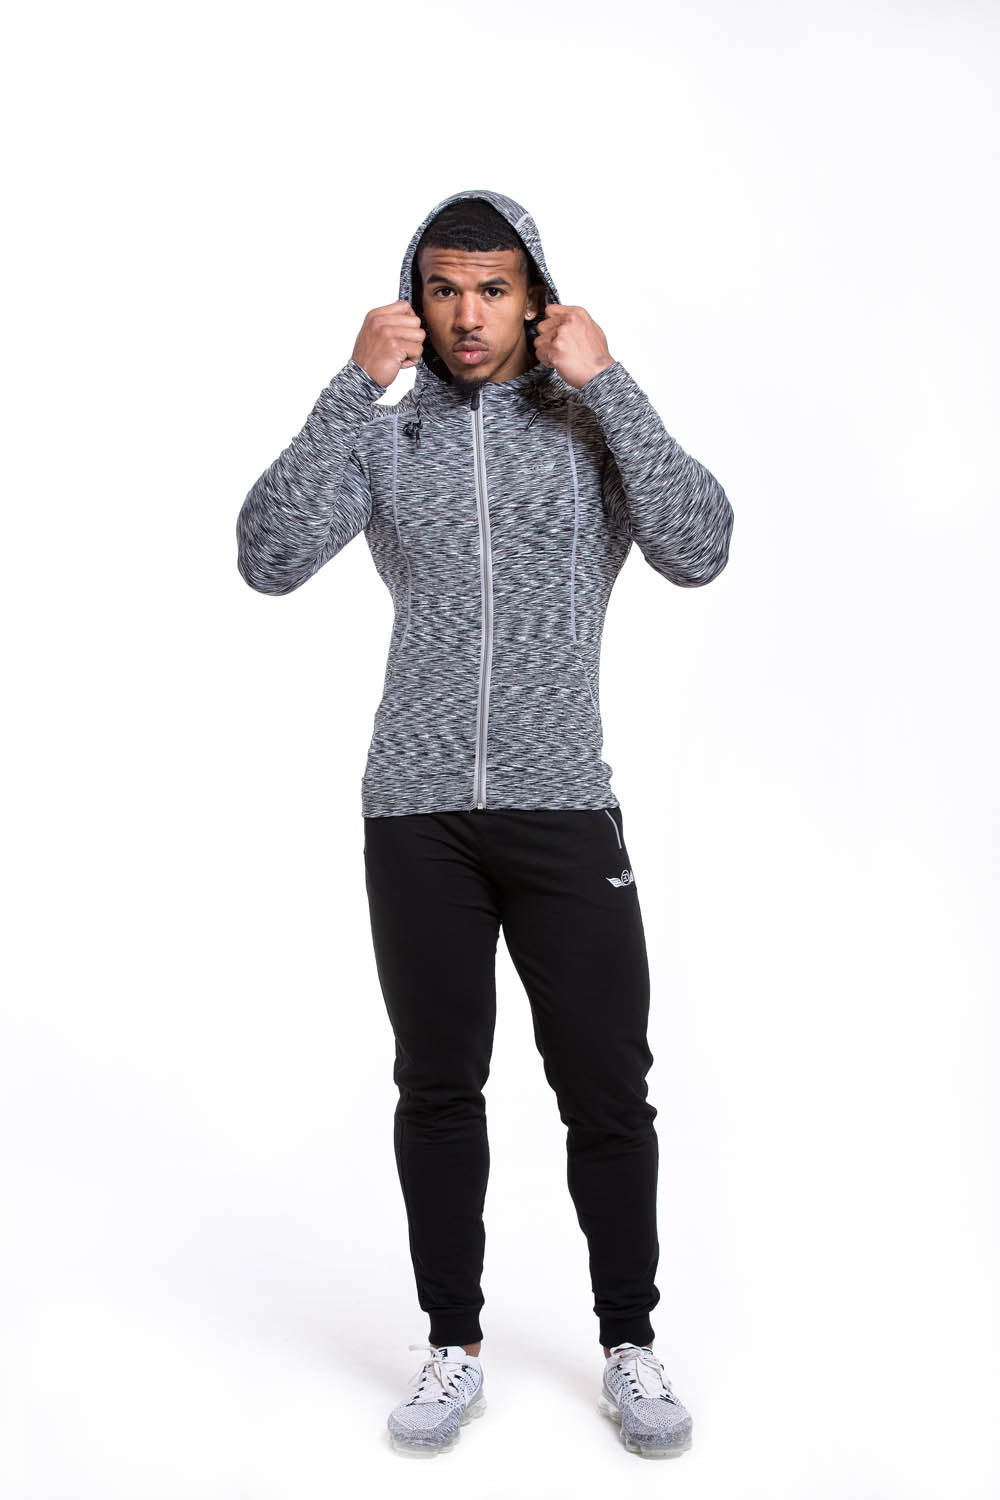 HEKA Dry Fit Hoodie - Light